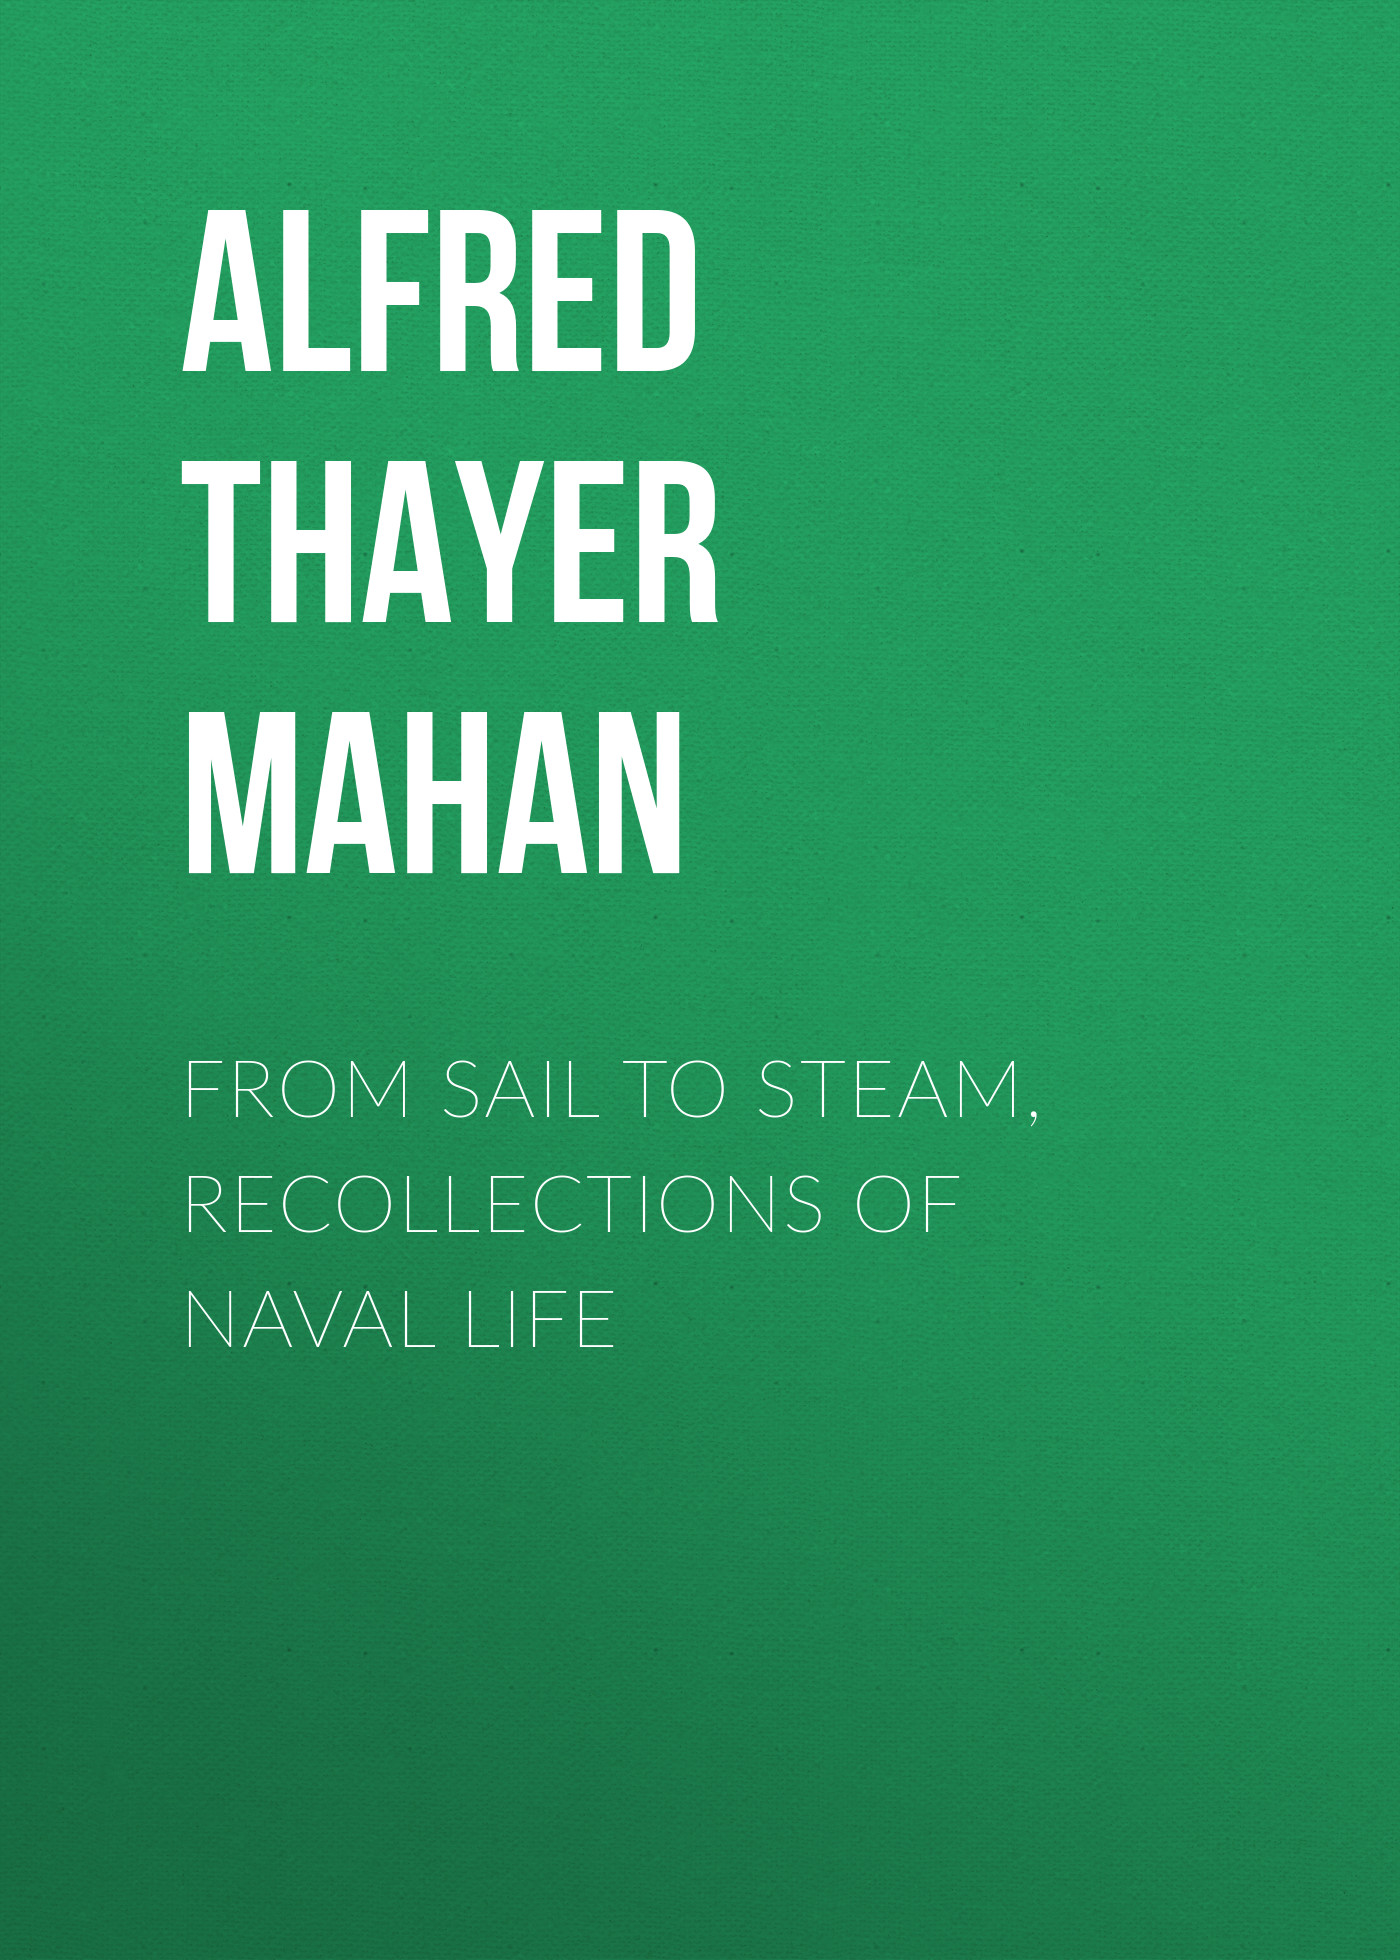 Alfred Thayer Mahan From Sail to Steam, Recollections of Naval Life alfred thayer mahan from sail to steam recollections of naval life